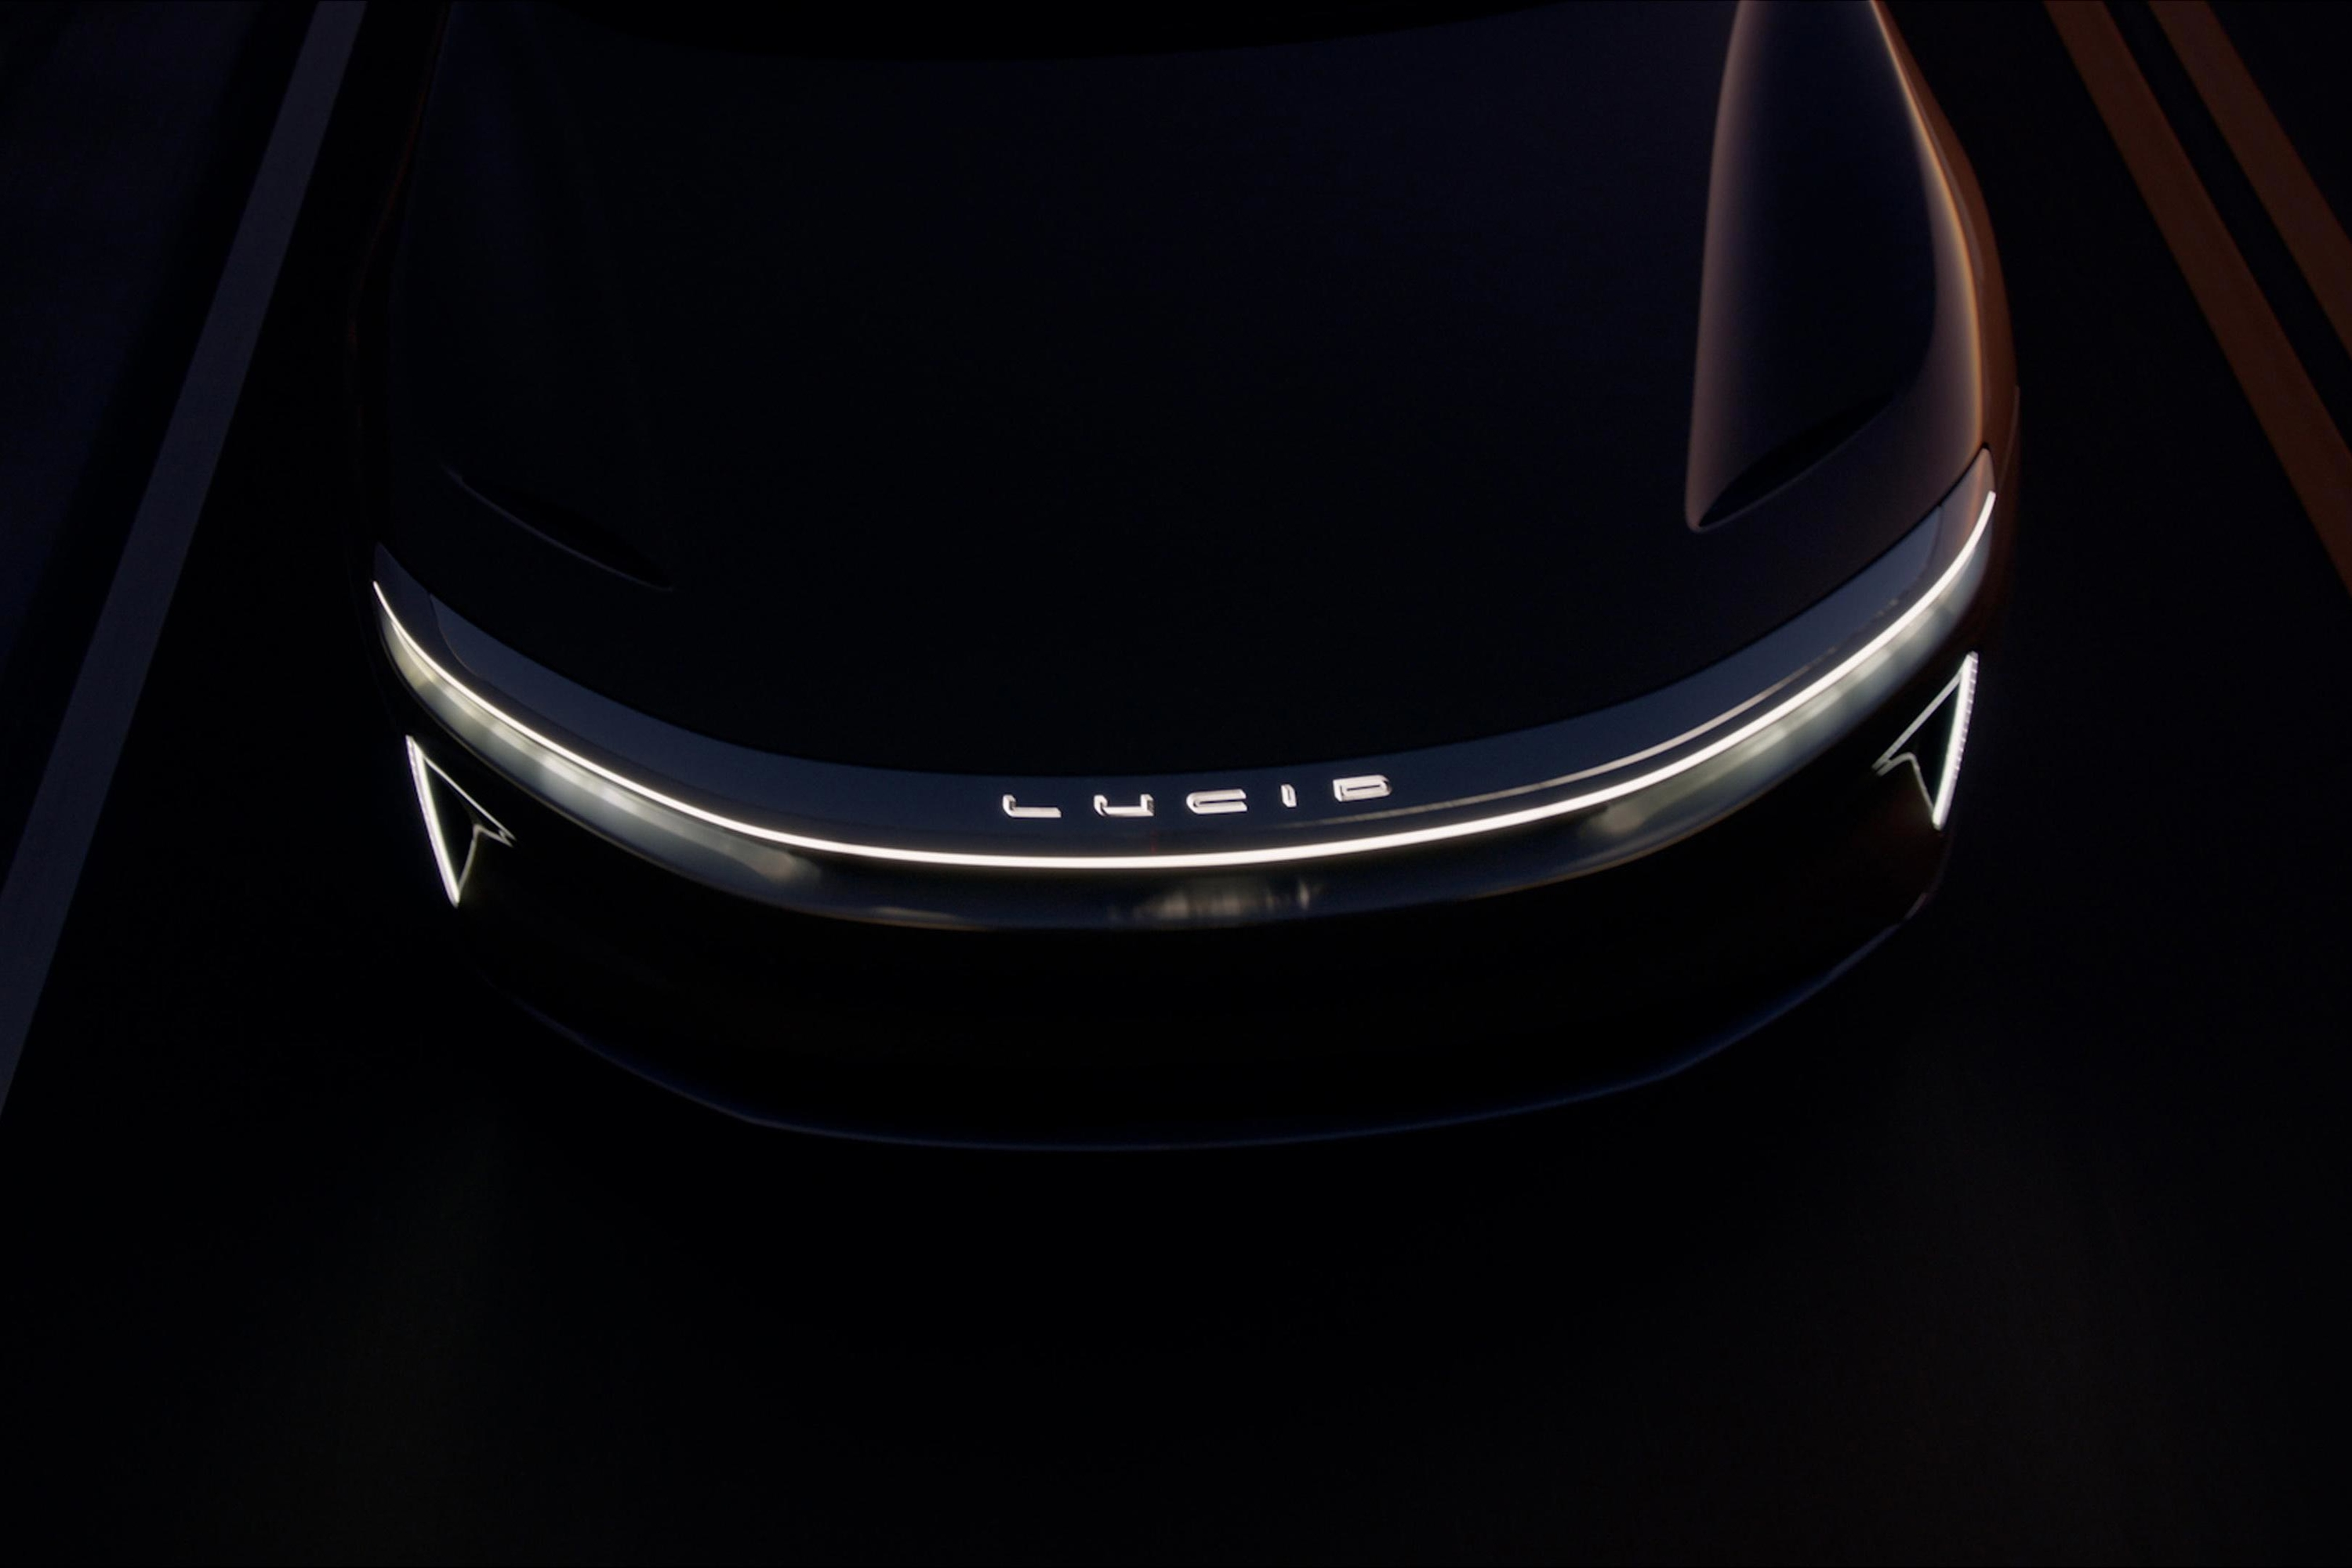 Tesla competitors Lucid Motors, VW, Ford  stalk Elon Musk's 'Saturday Night Live' appearance with ads during the show